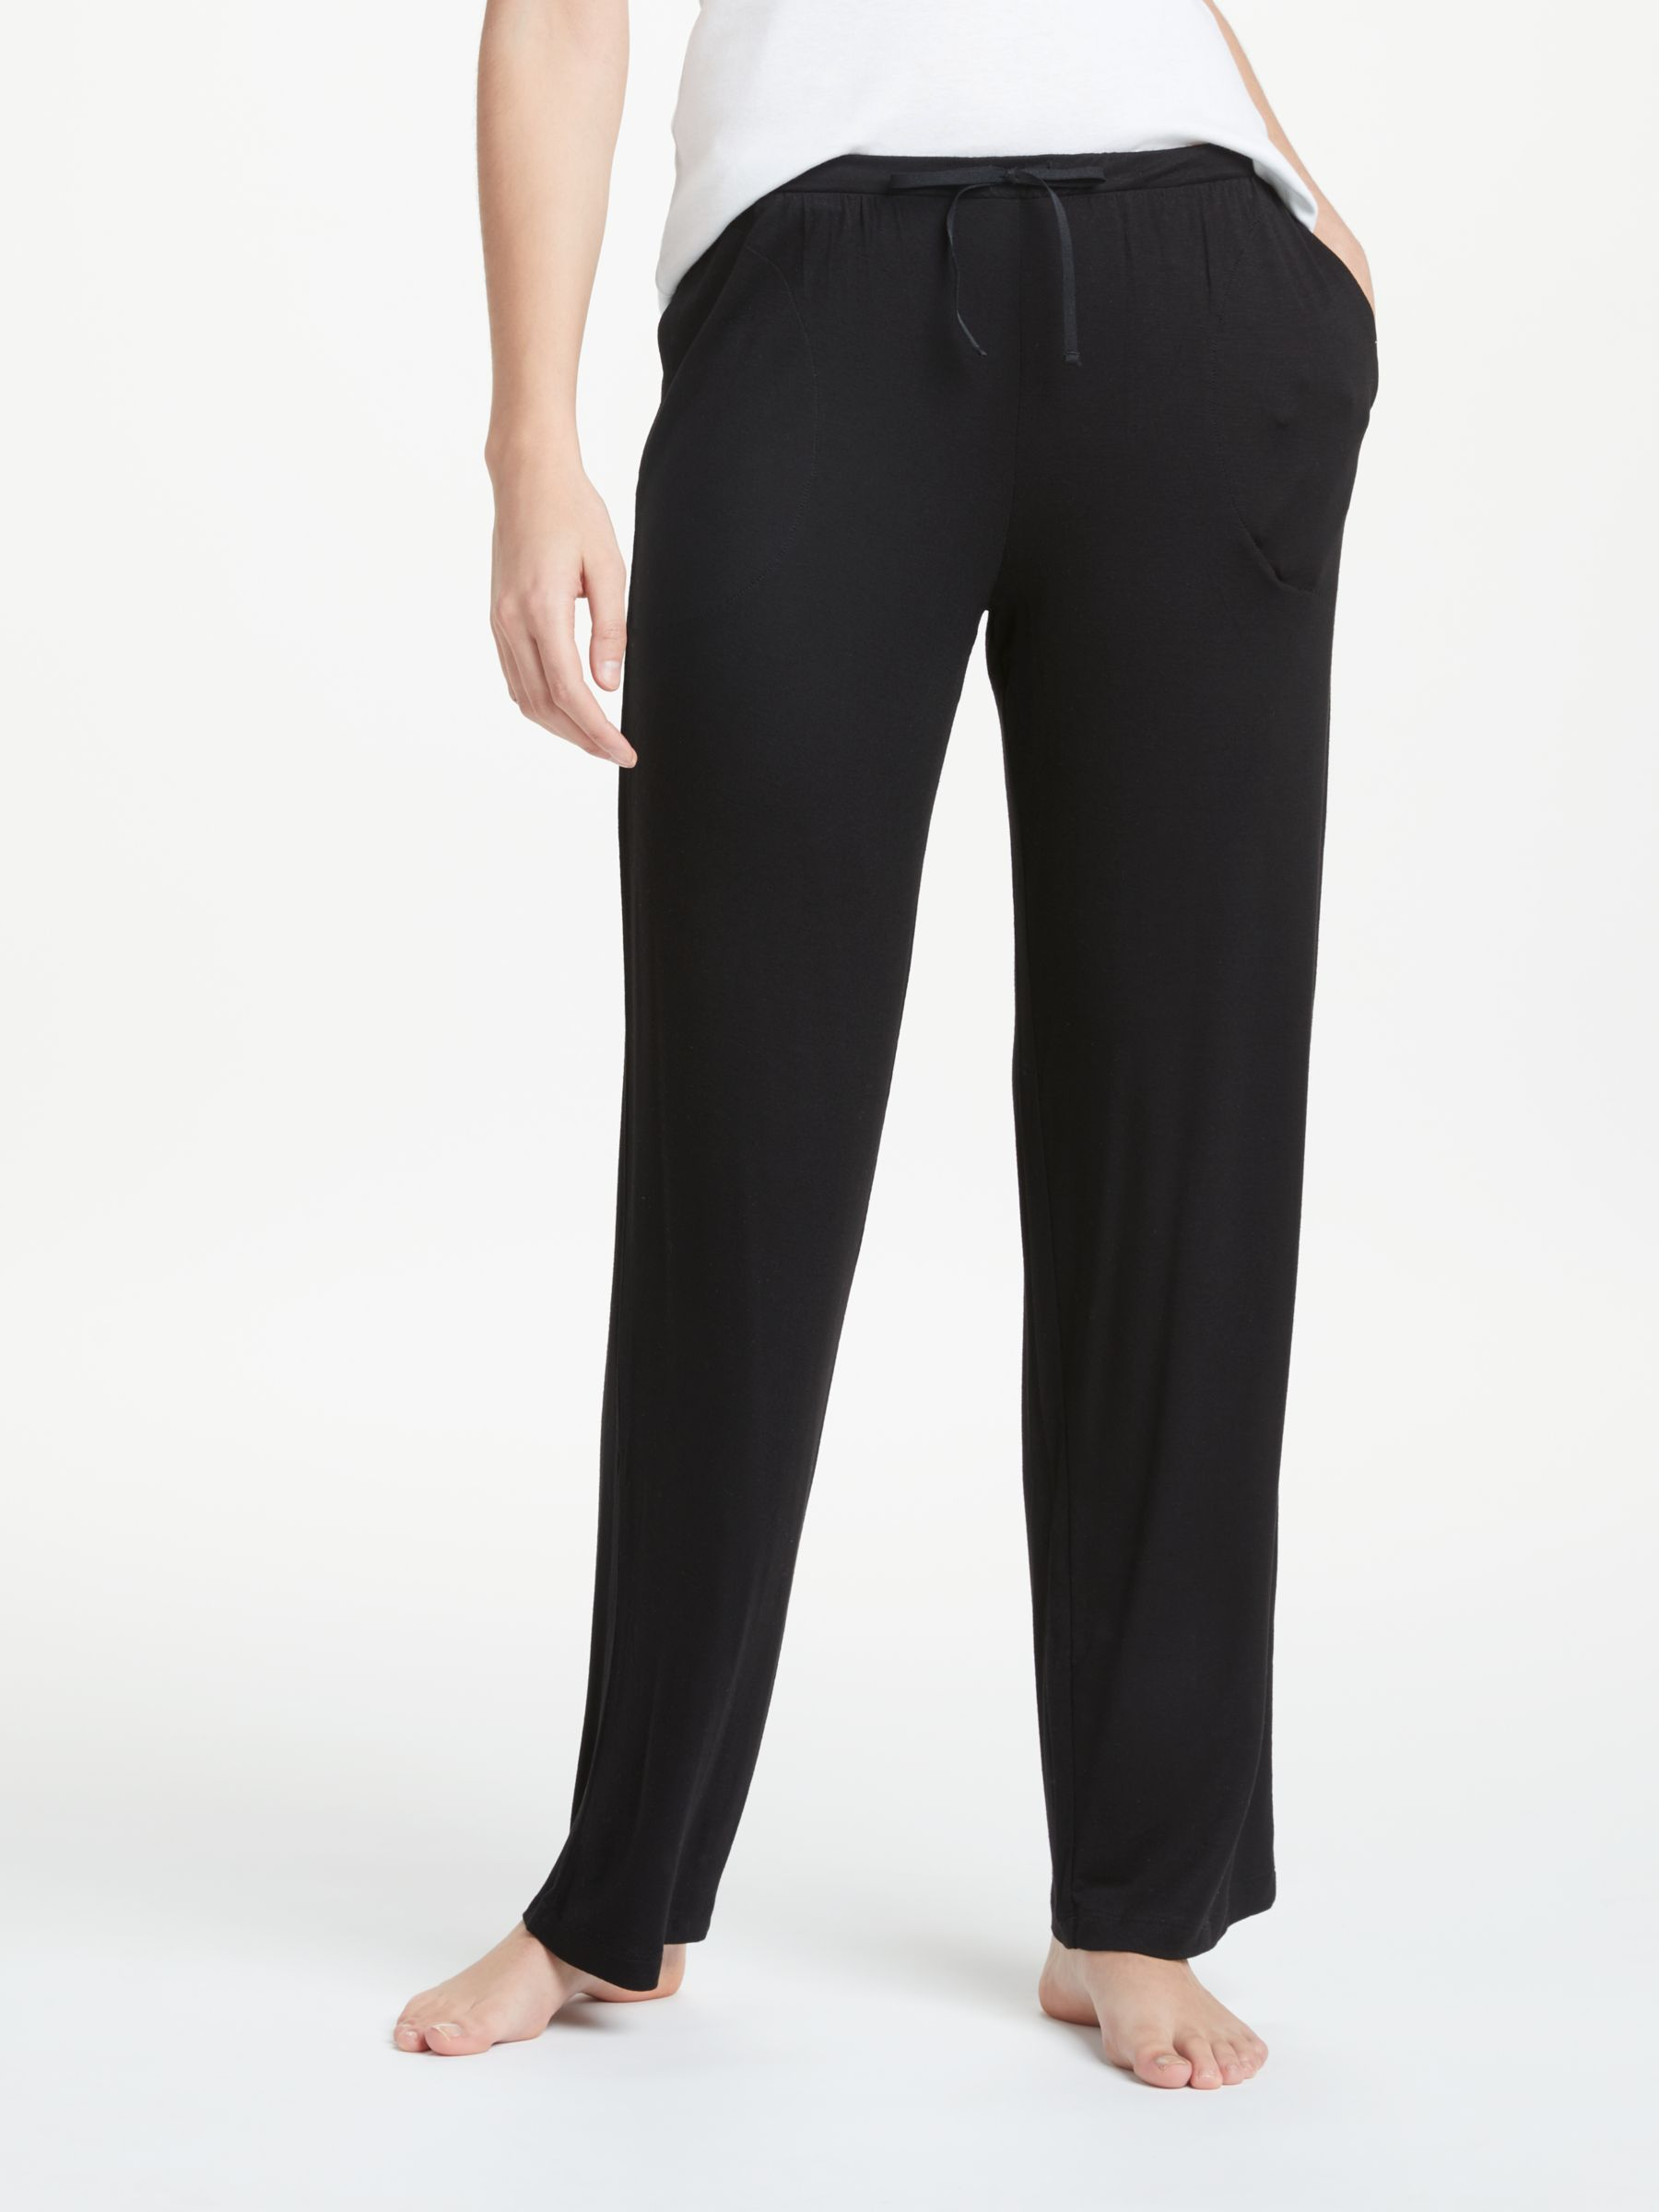 DKNY DKNY Core Essential Lounge Bottoms, Black